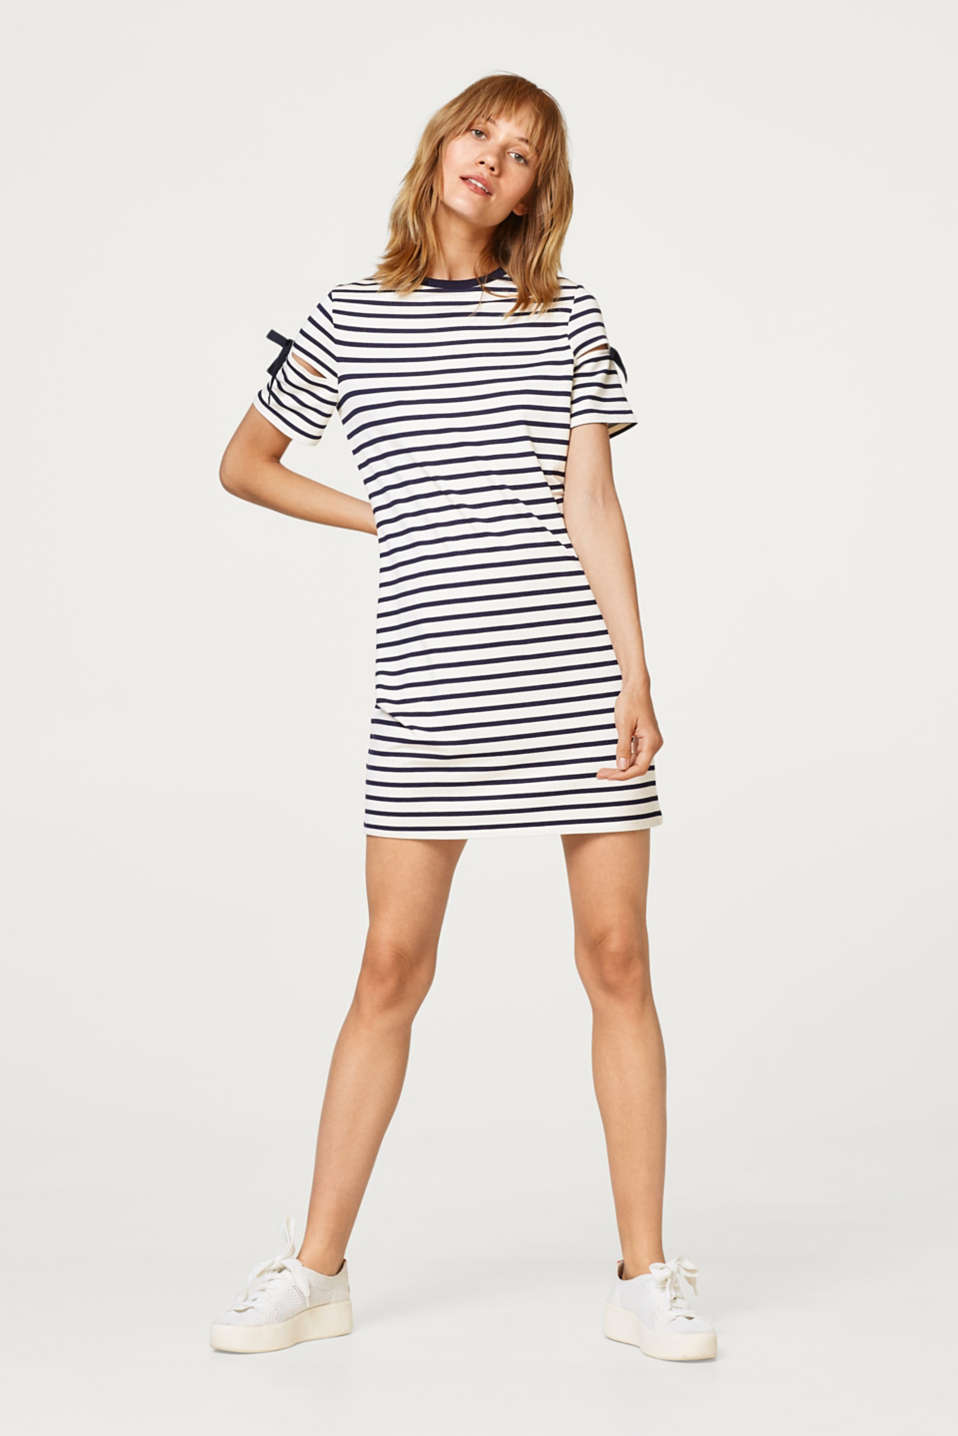 Soft sweatshirt dress with stripes and cut-out sleeves